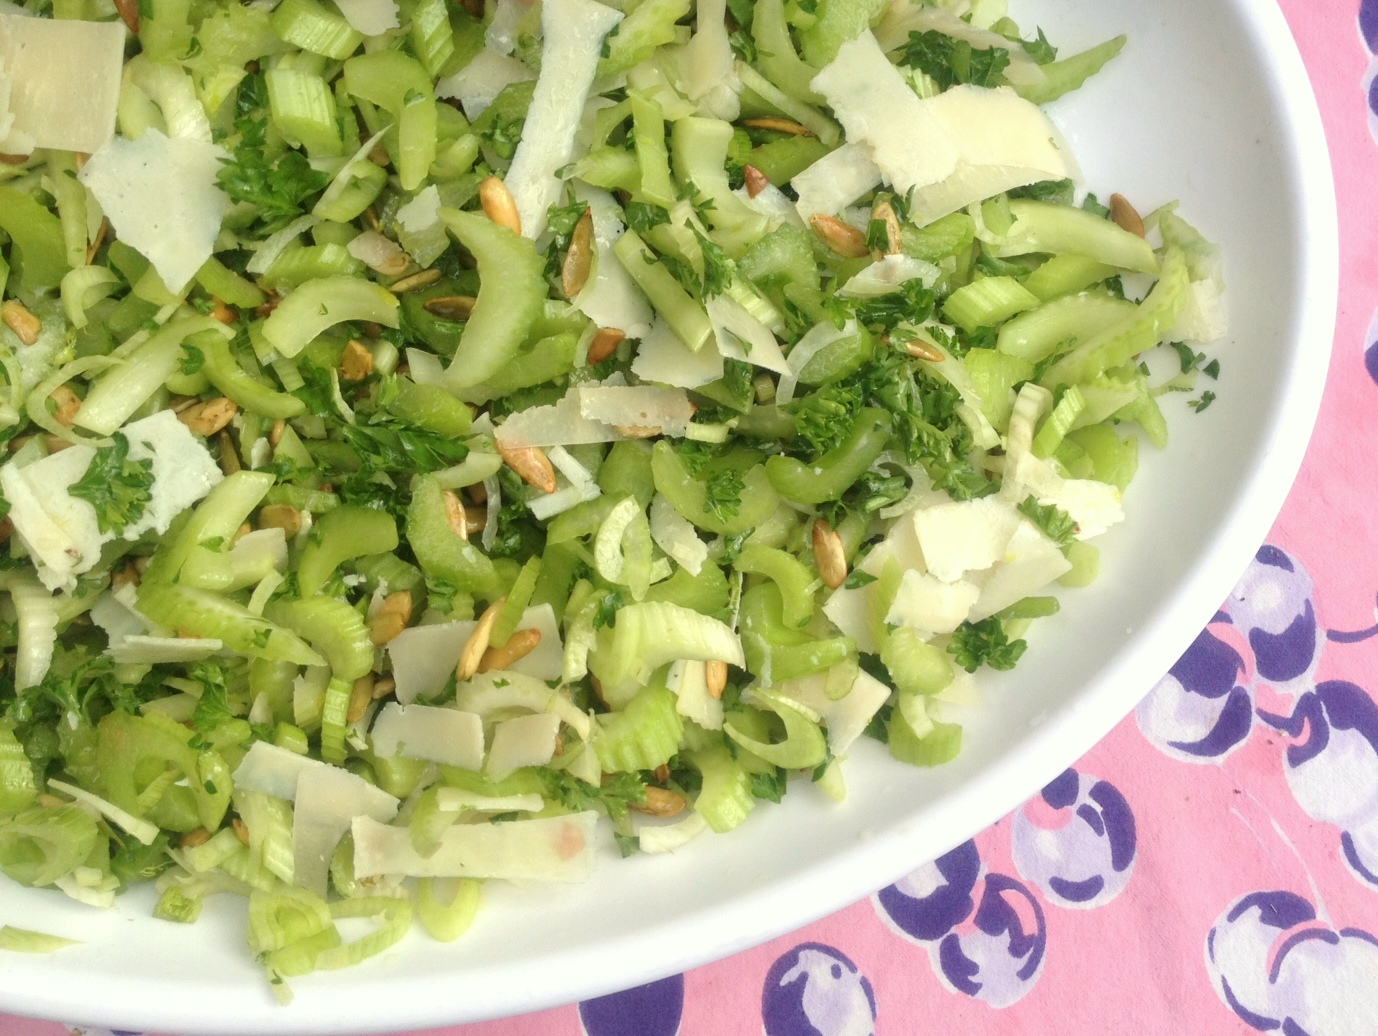 Crunchy Celery And Romaine Heart Salad Recipe — Dishmaps